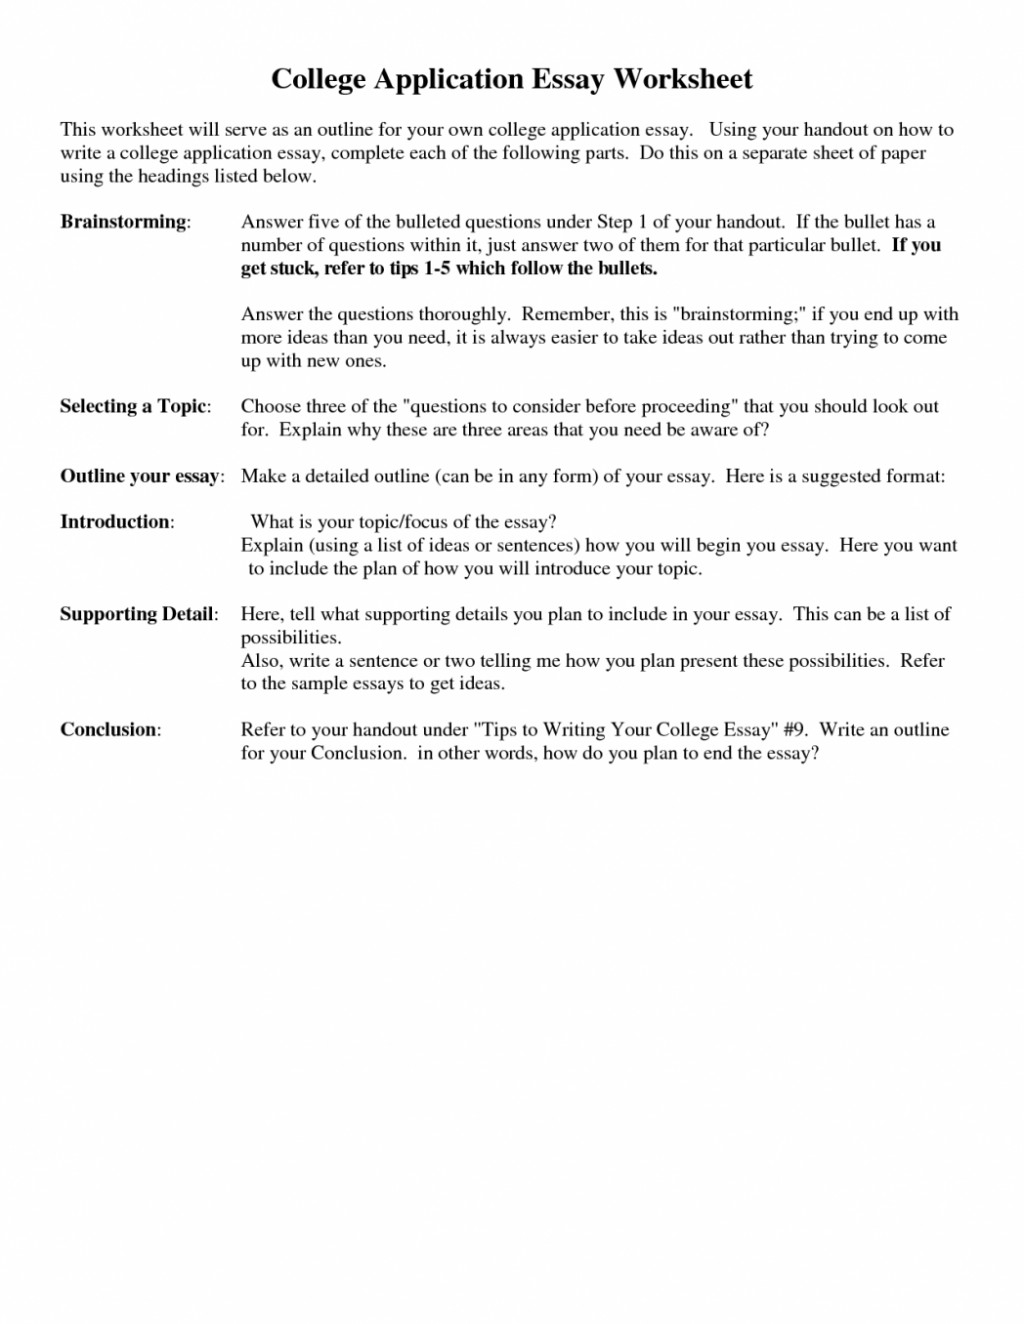 013 Images Of Collegessay Outline Template Leseriail Com How To Write Application That Stands Out Writing About Yourselfxamples Topics On Tips Forxample Introduction 1048x1356 Striking College Essay Heading Format Example Pdf Research Paper Large